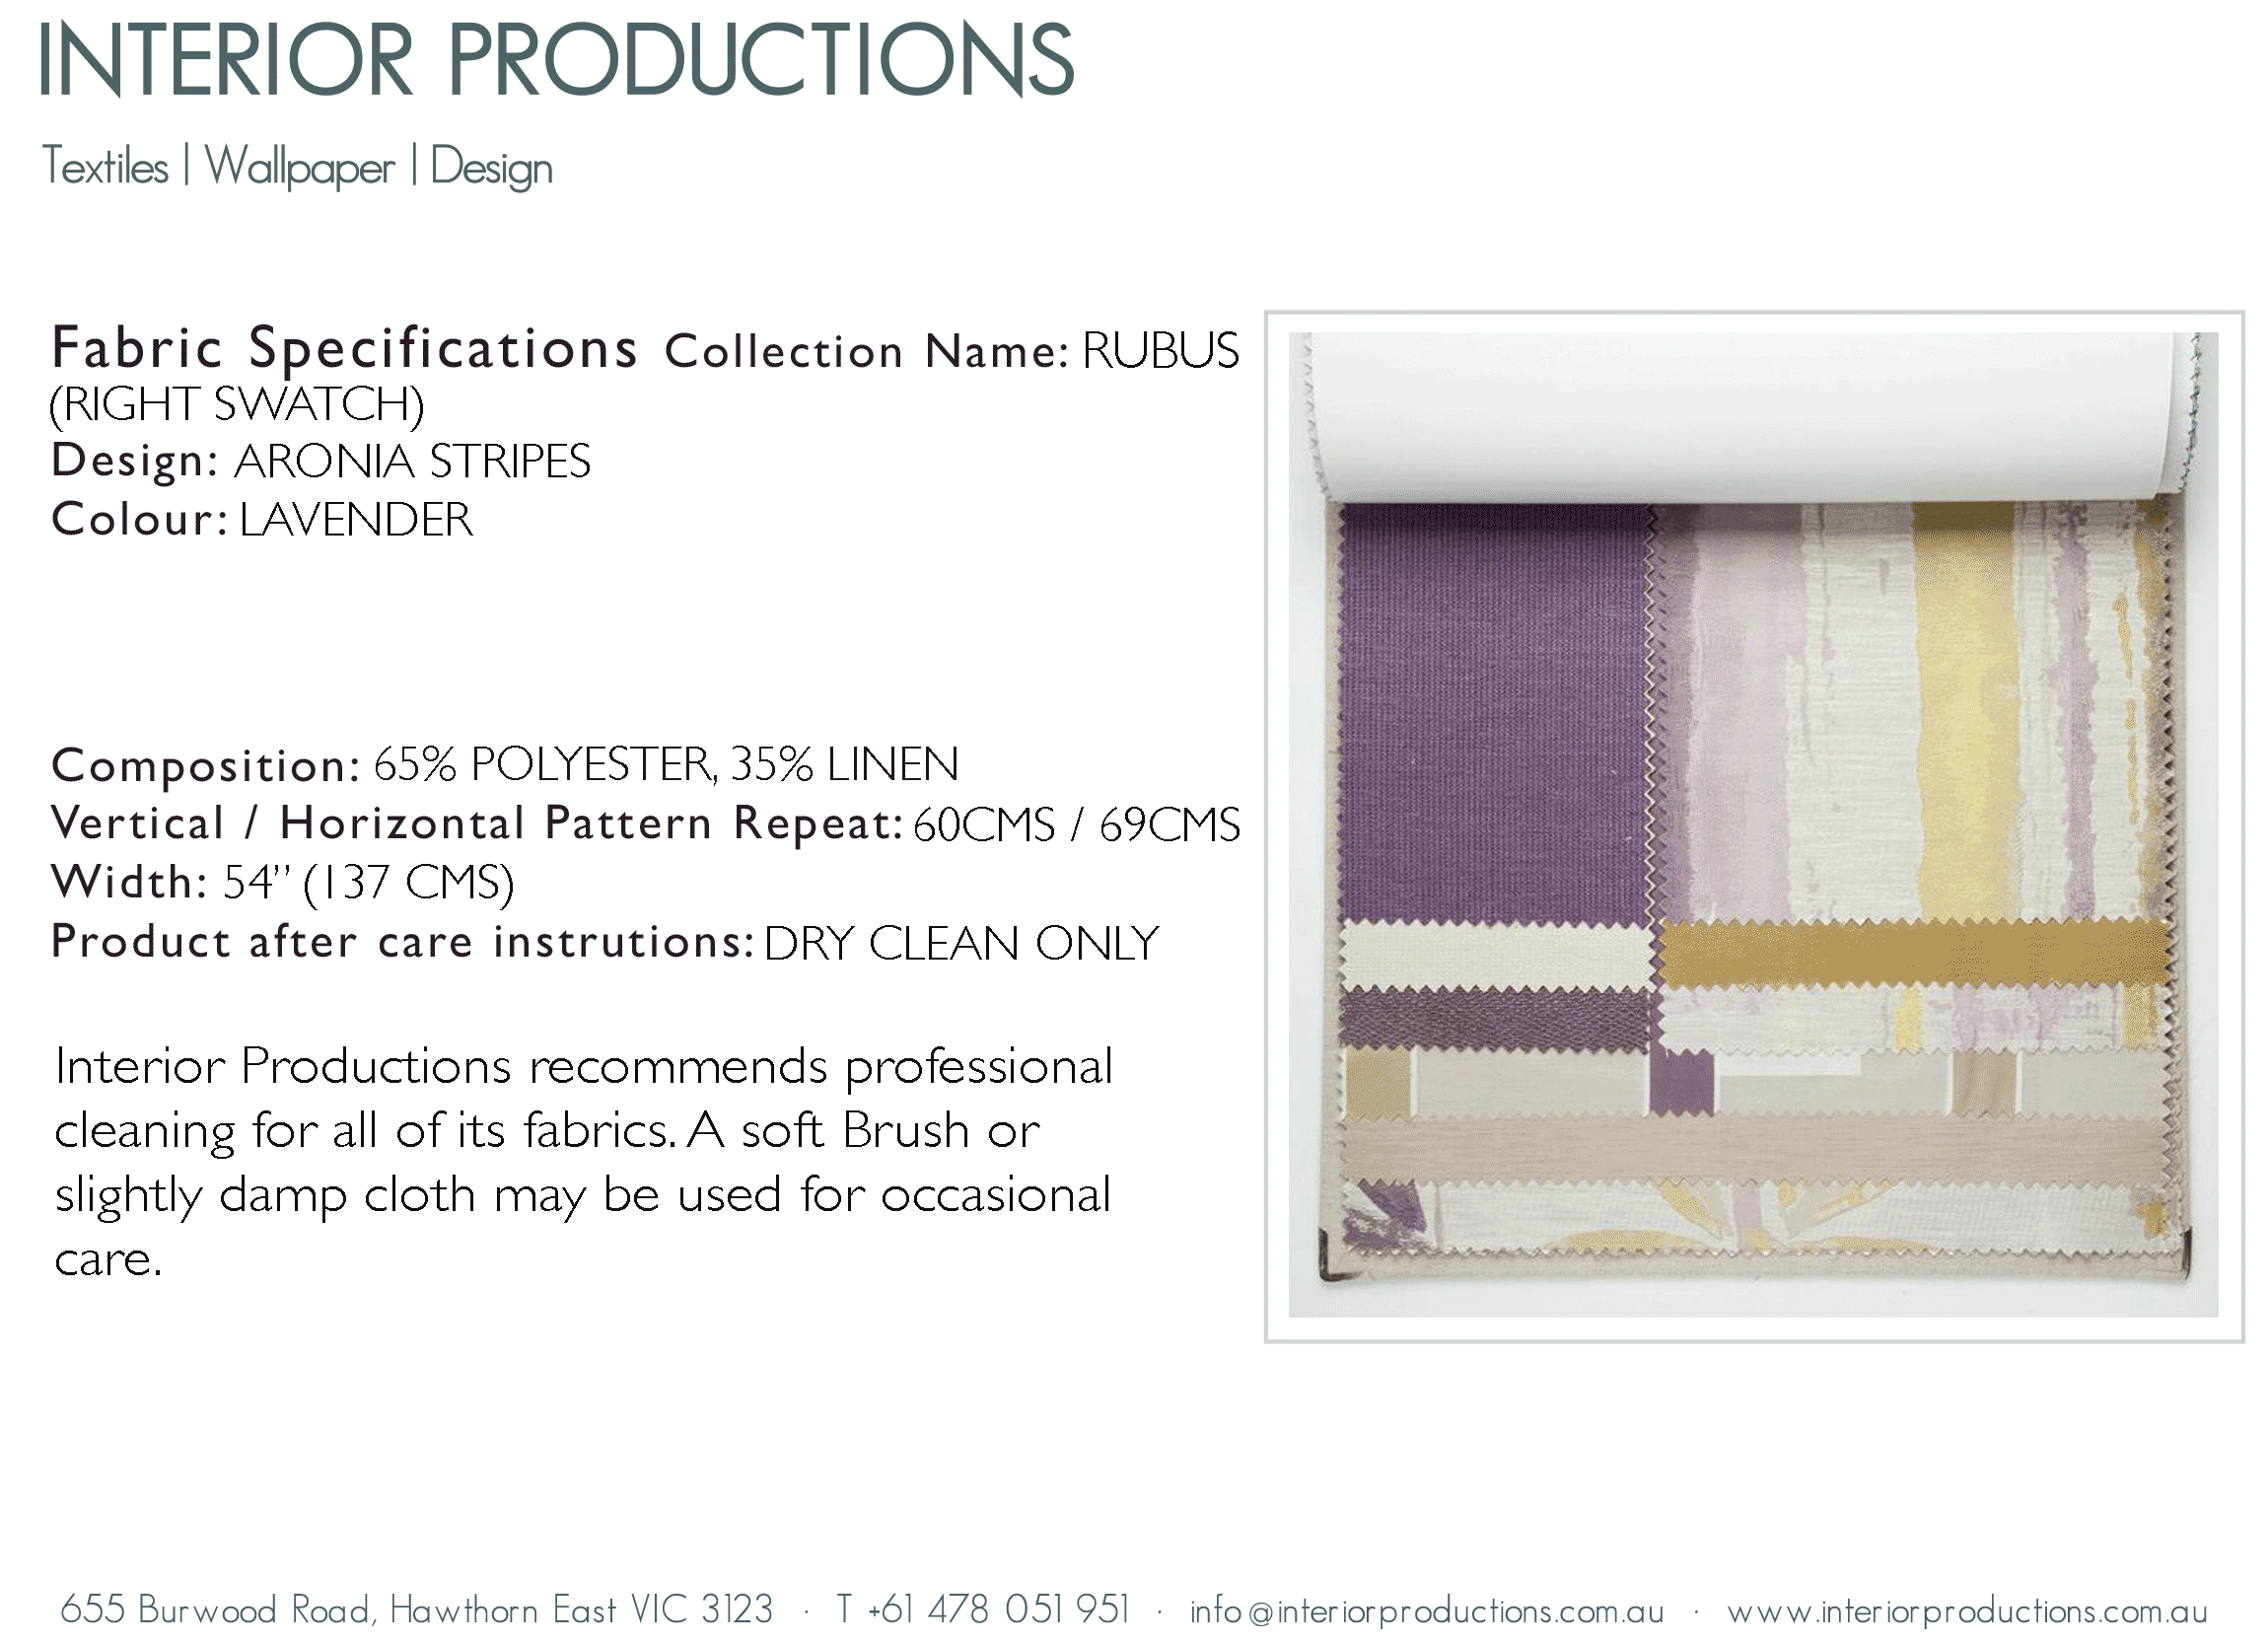 interior_productions_ARONIA-STRIPES---LAVENDER